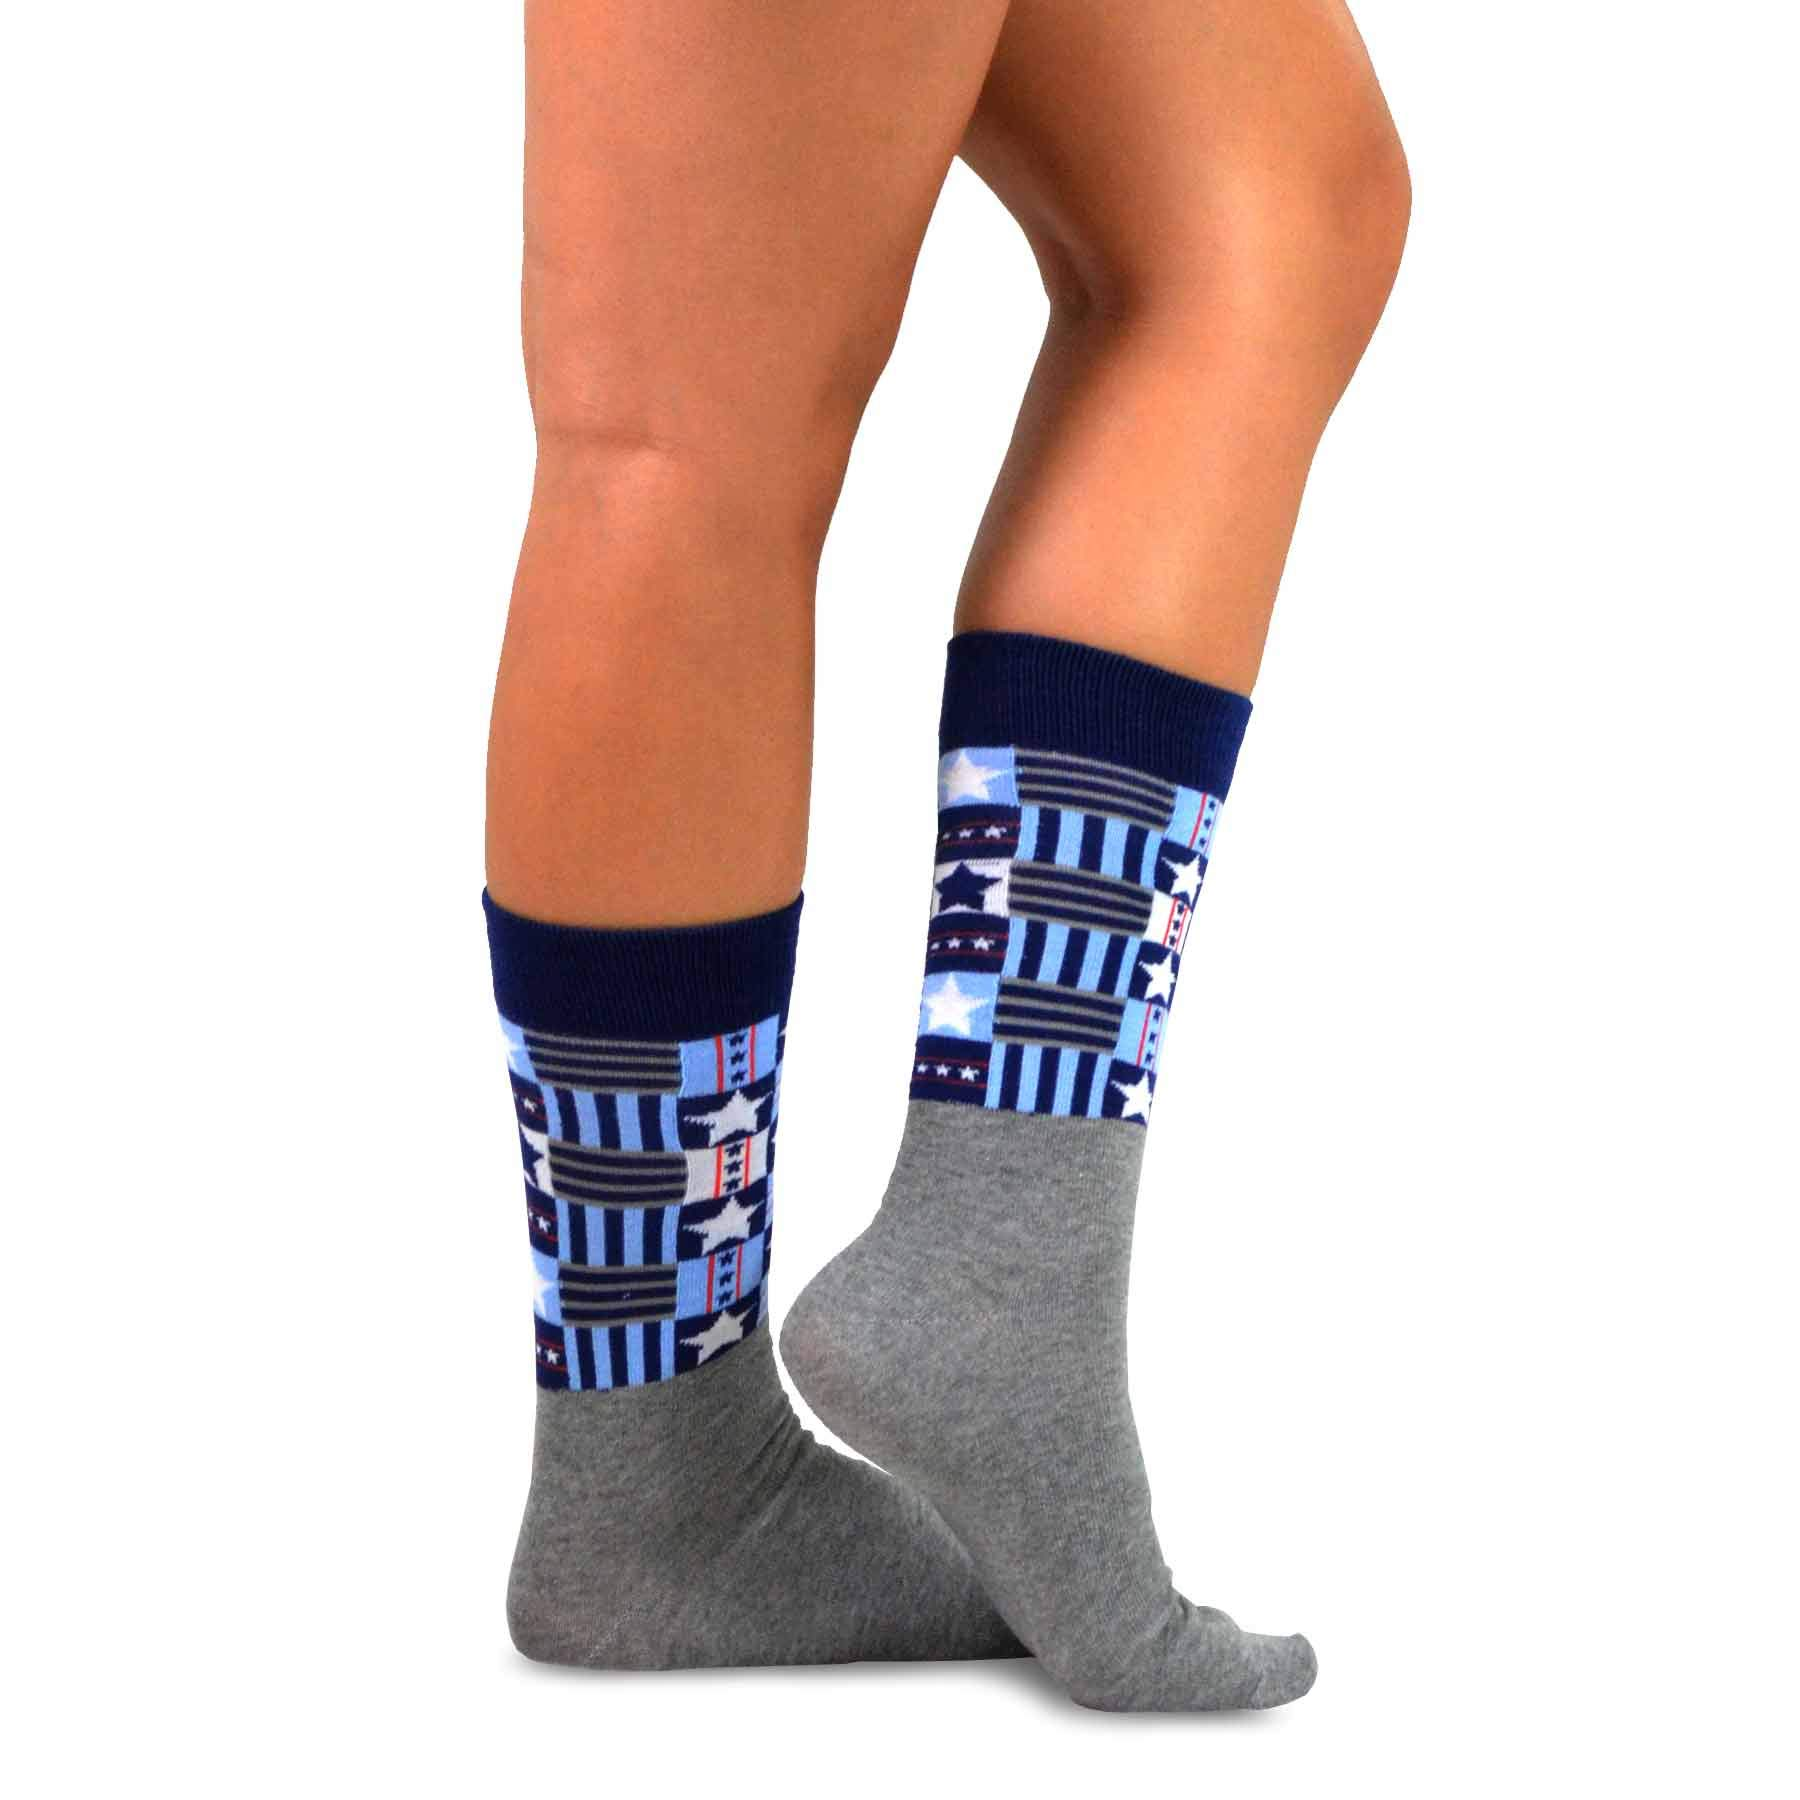 b99c4521dd6 TeeHee Special (Holiday) 12-Pairs Socks with Gift Box. - Valentines